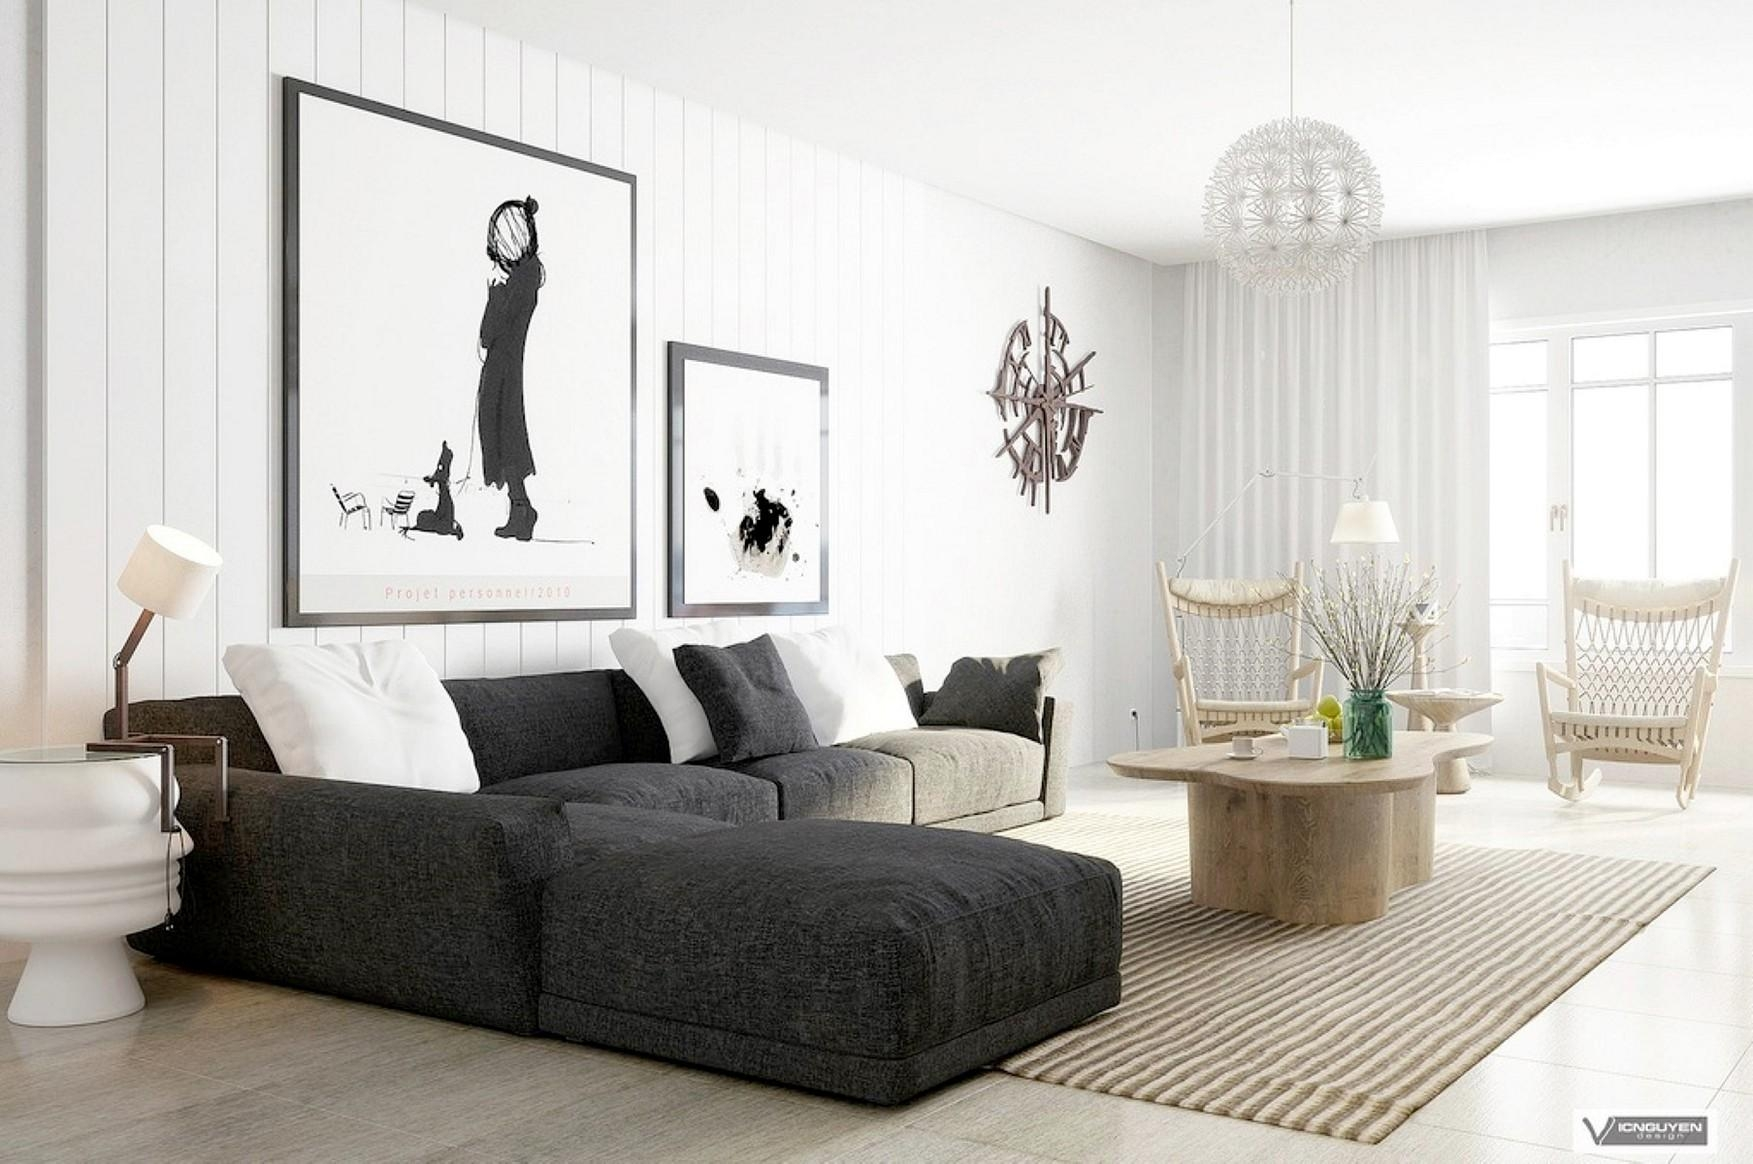 sofa floor lamp living room ideas with a sage green 15 43 choices of for sectional couch